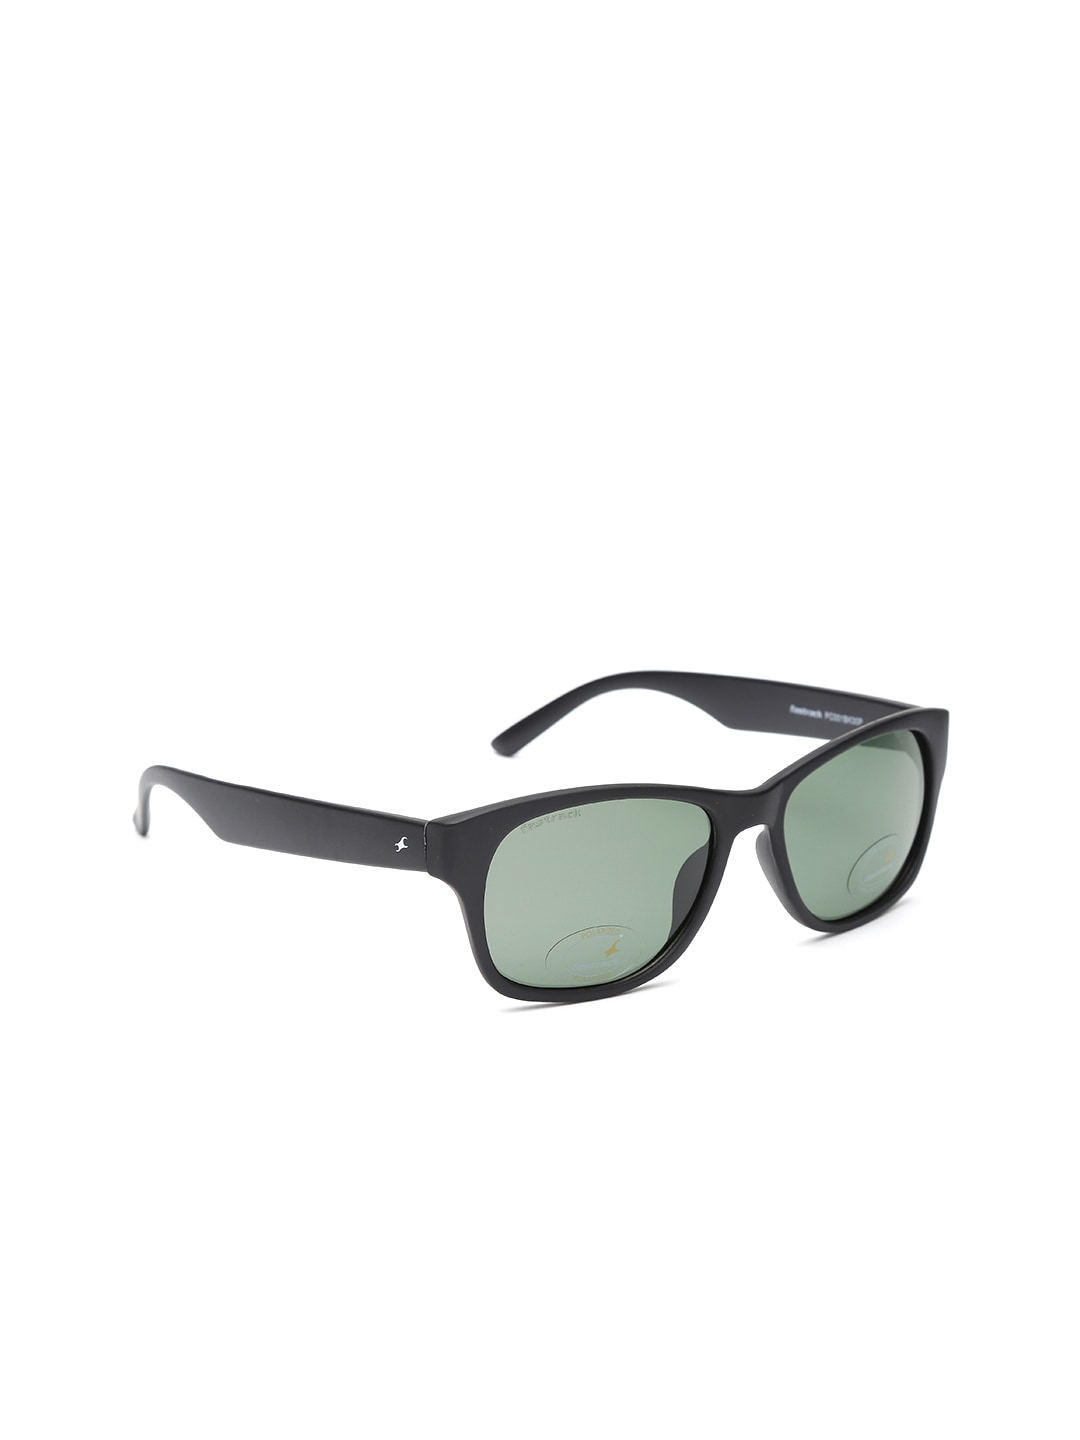 90f4e5662 Wayfarer Beard Sunglasses Ornamental Tshirts - Buy Wayfarer Beard  Sunglasses Ornamental Tshirts online in India